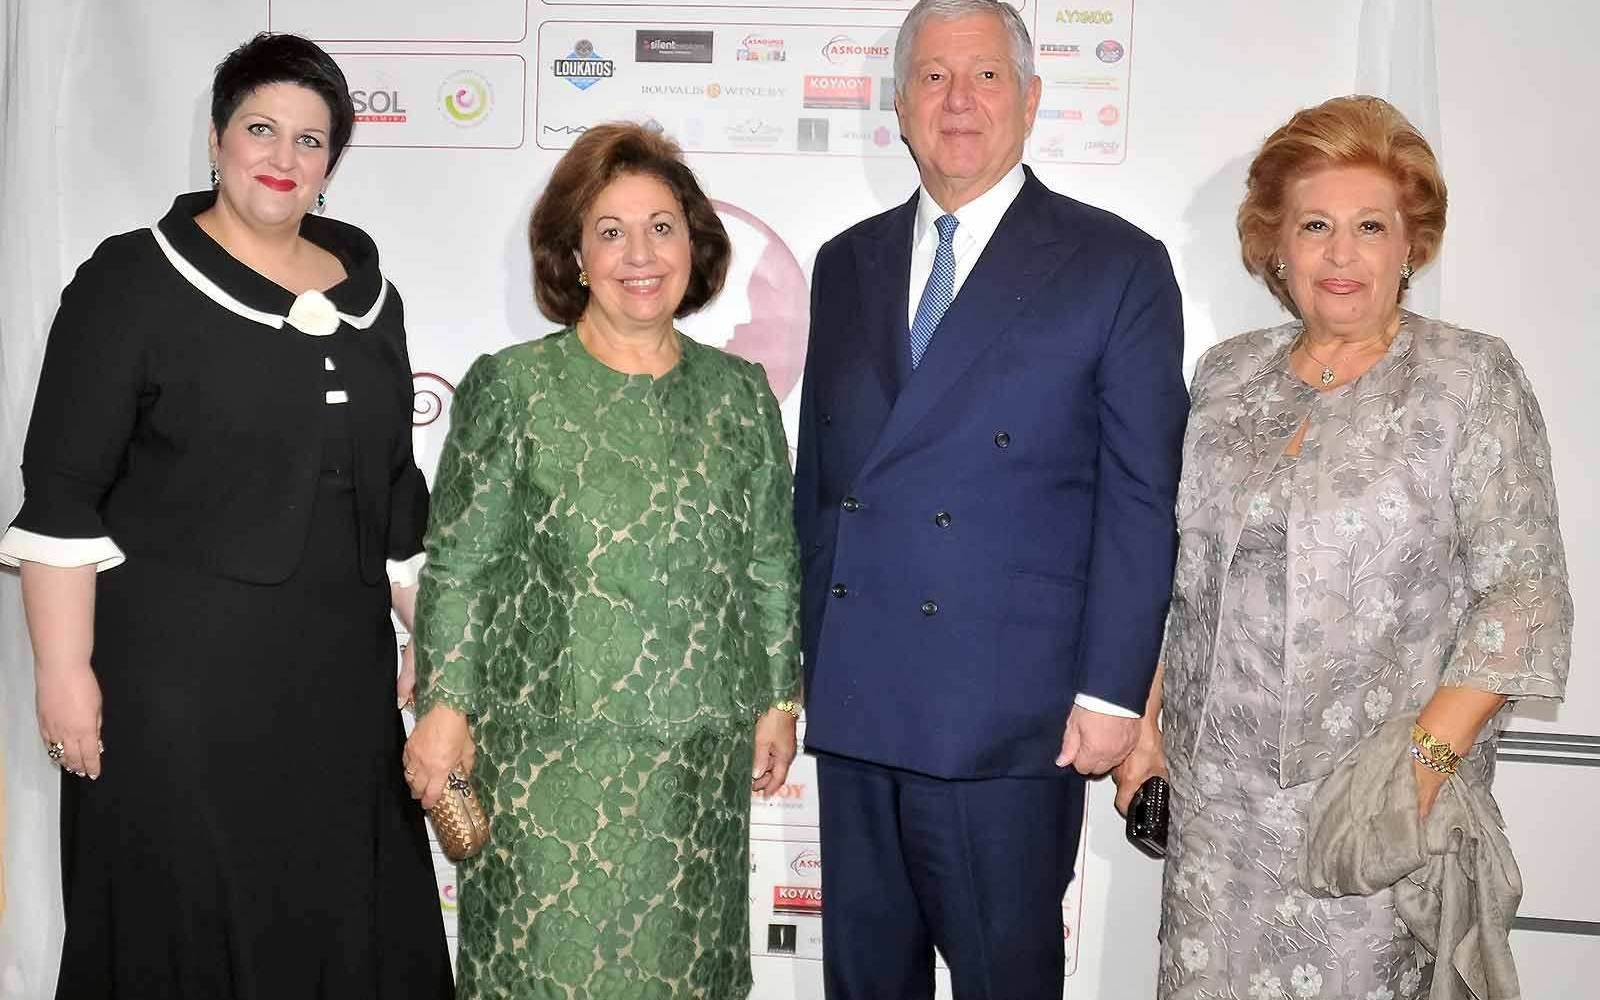 Women Union O f Patras - QUEEN Katherine of Serbia with Prince Alexander